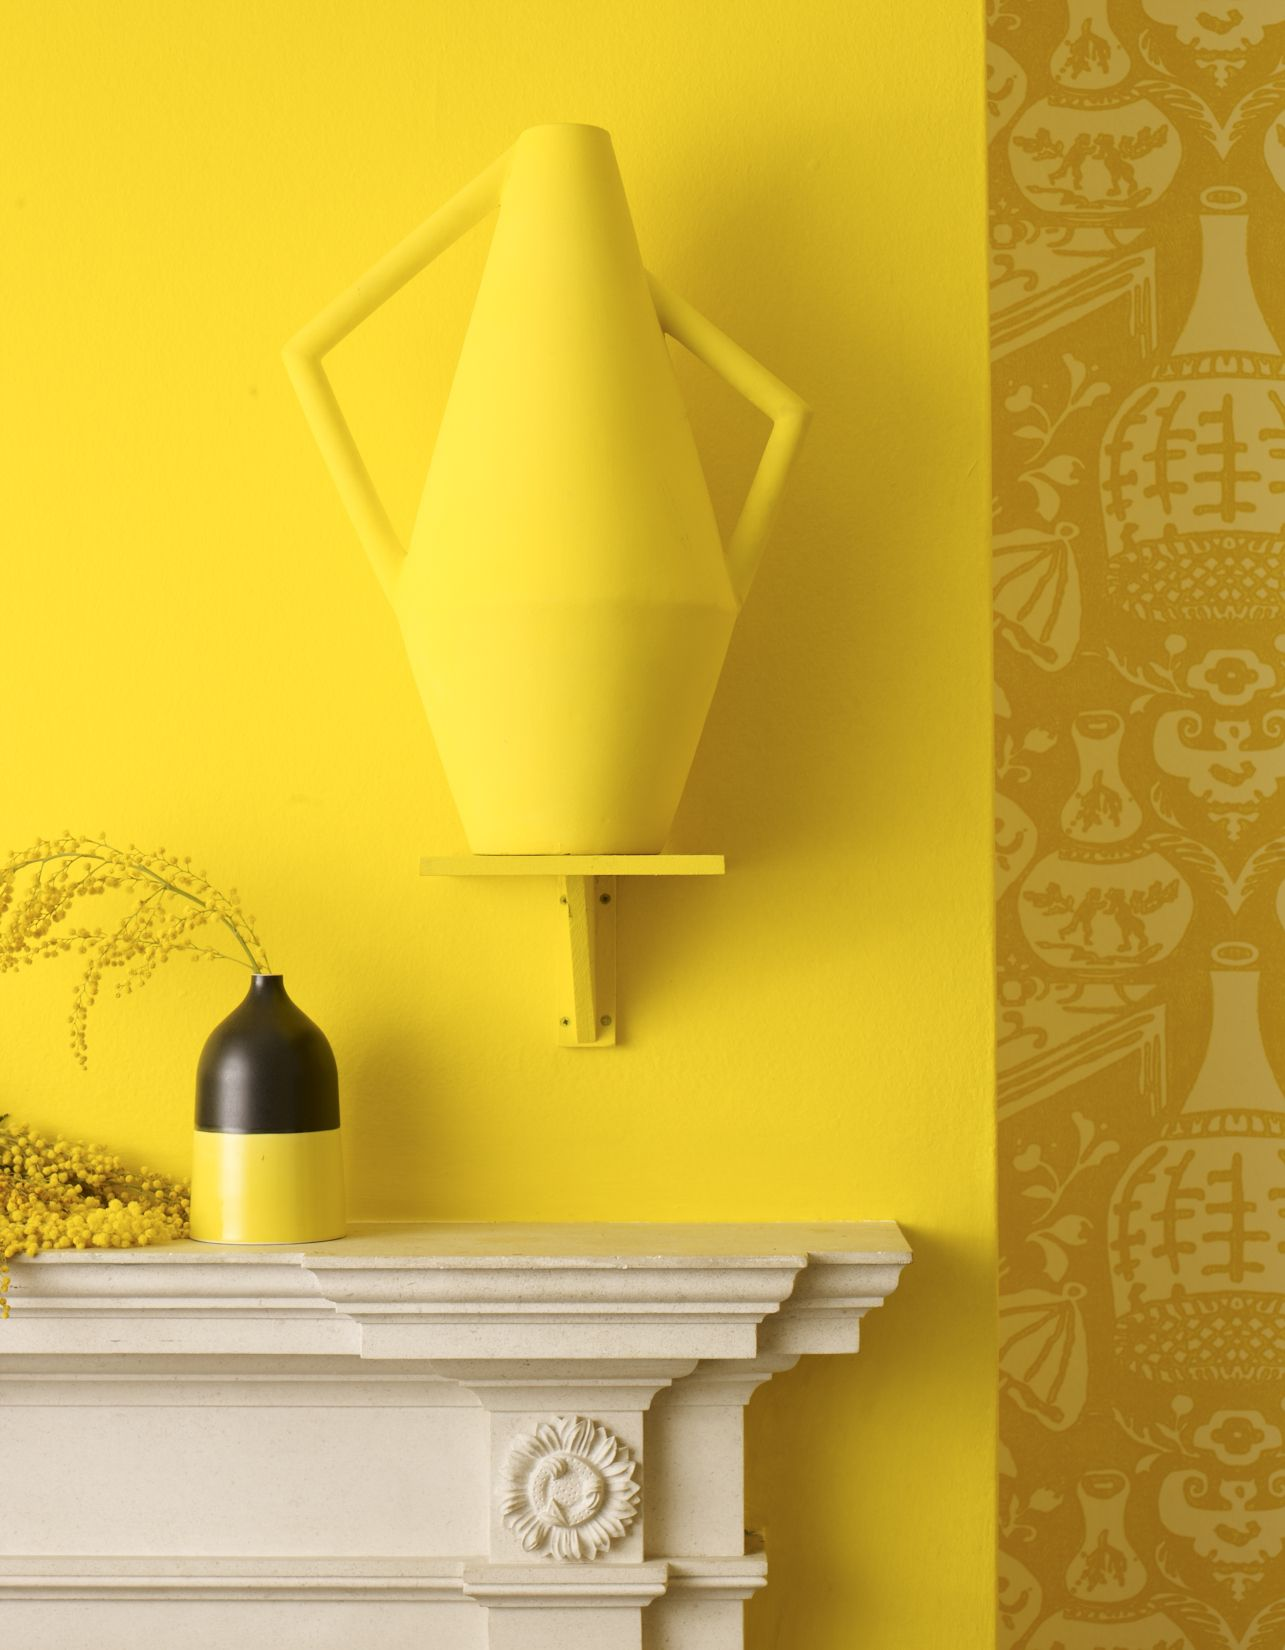 Yellow wall | Bright | Modern vase | Patterned wallpaper ...